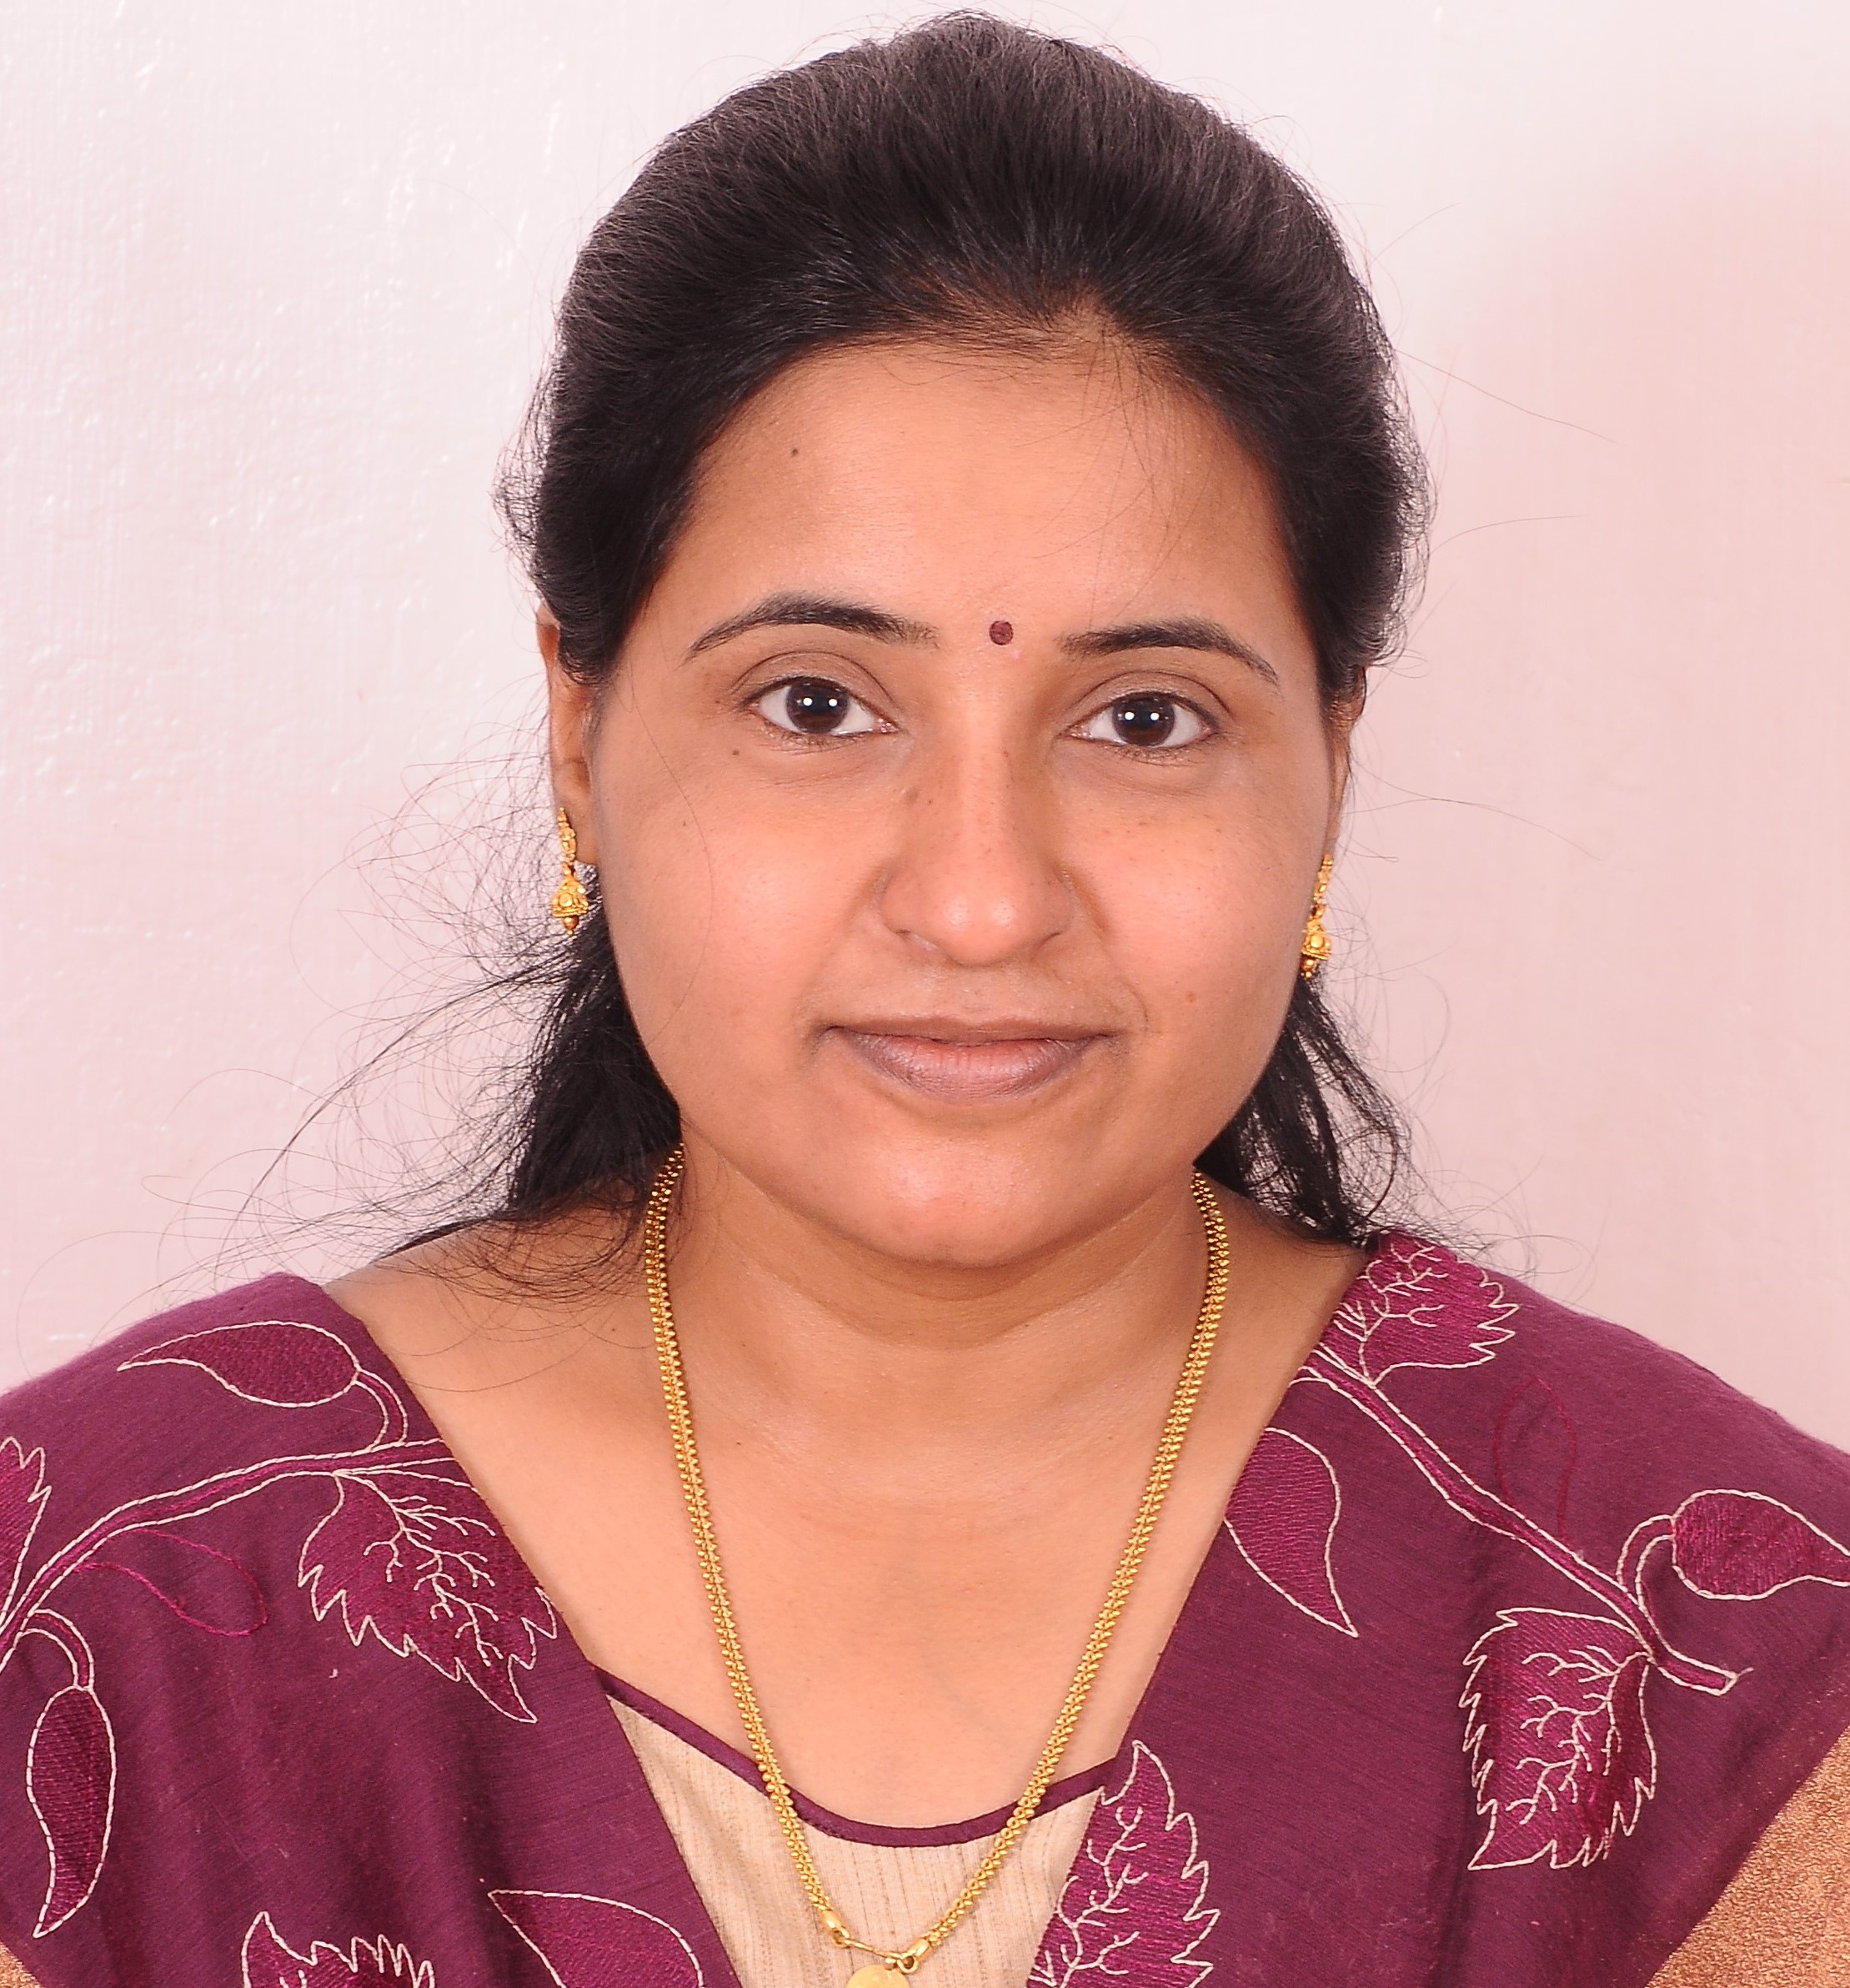 Photo of Remya Neelancherry